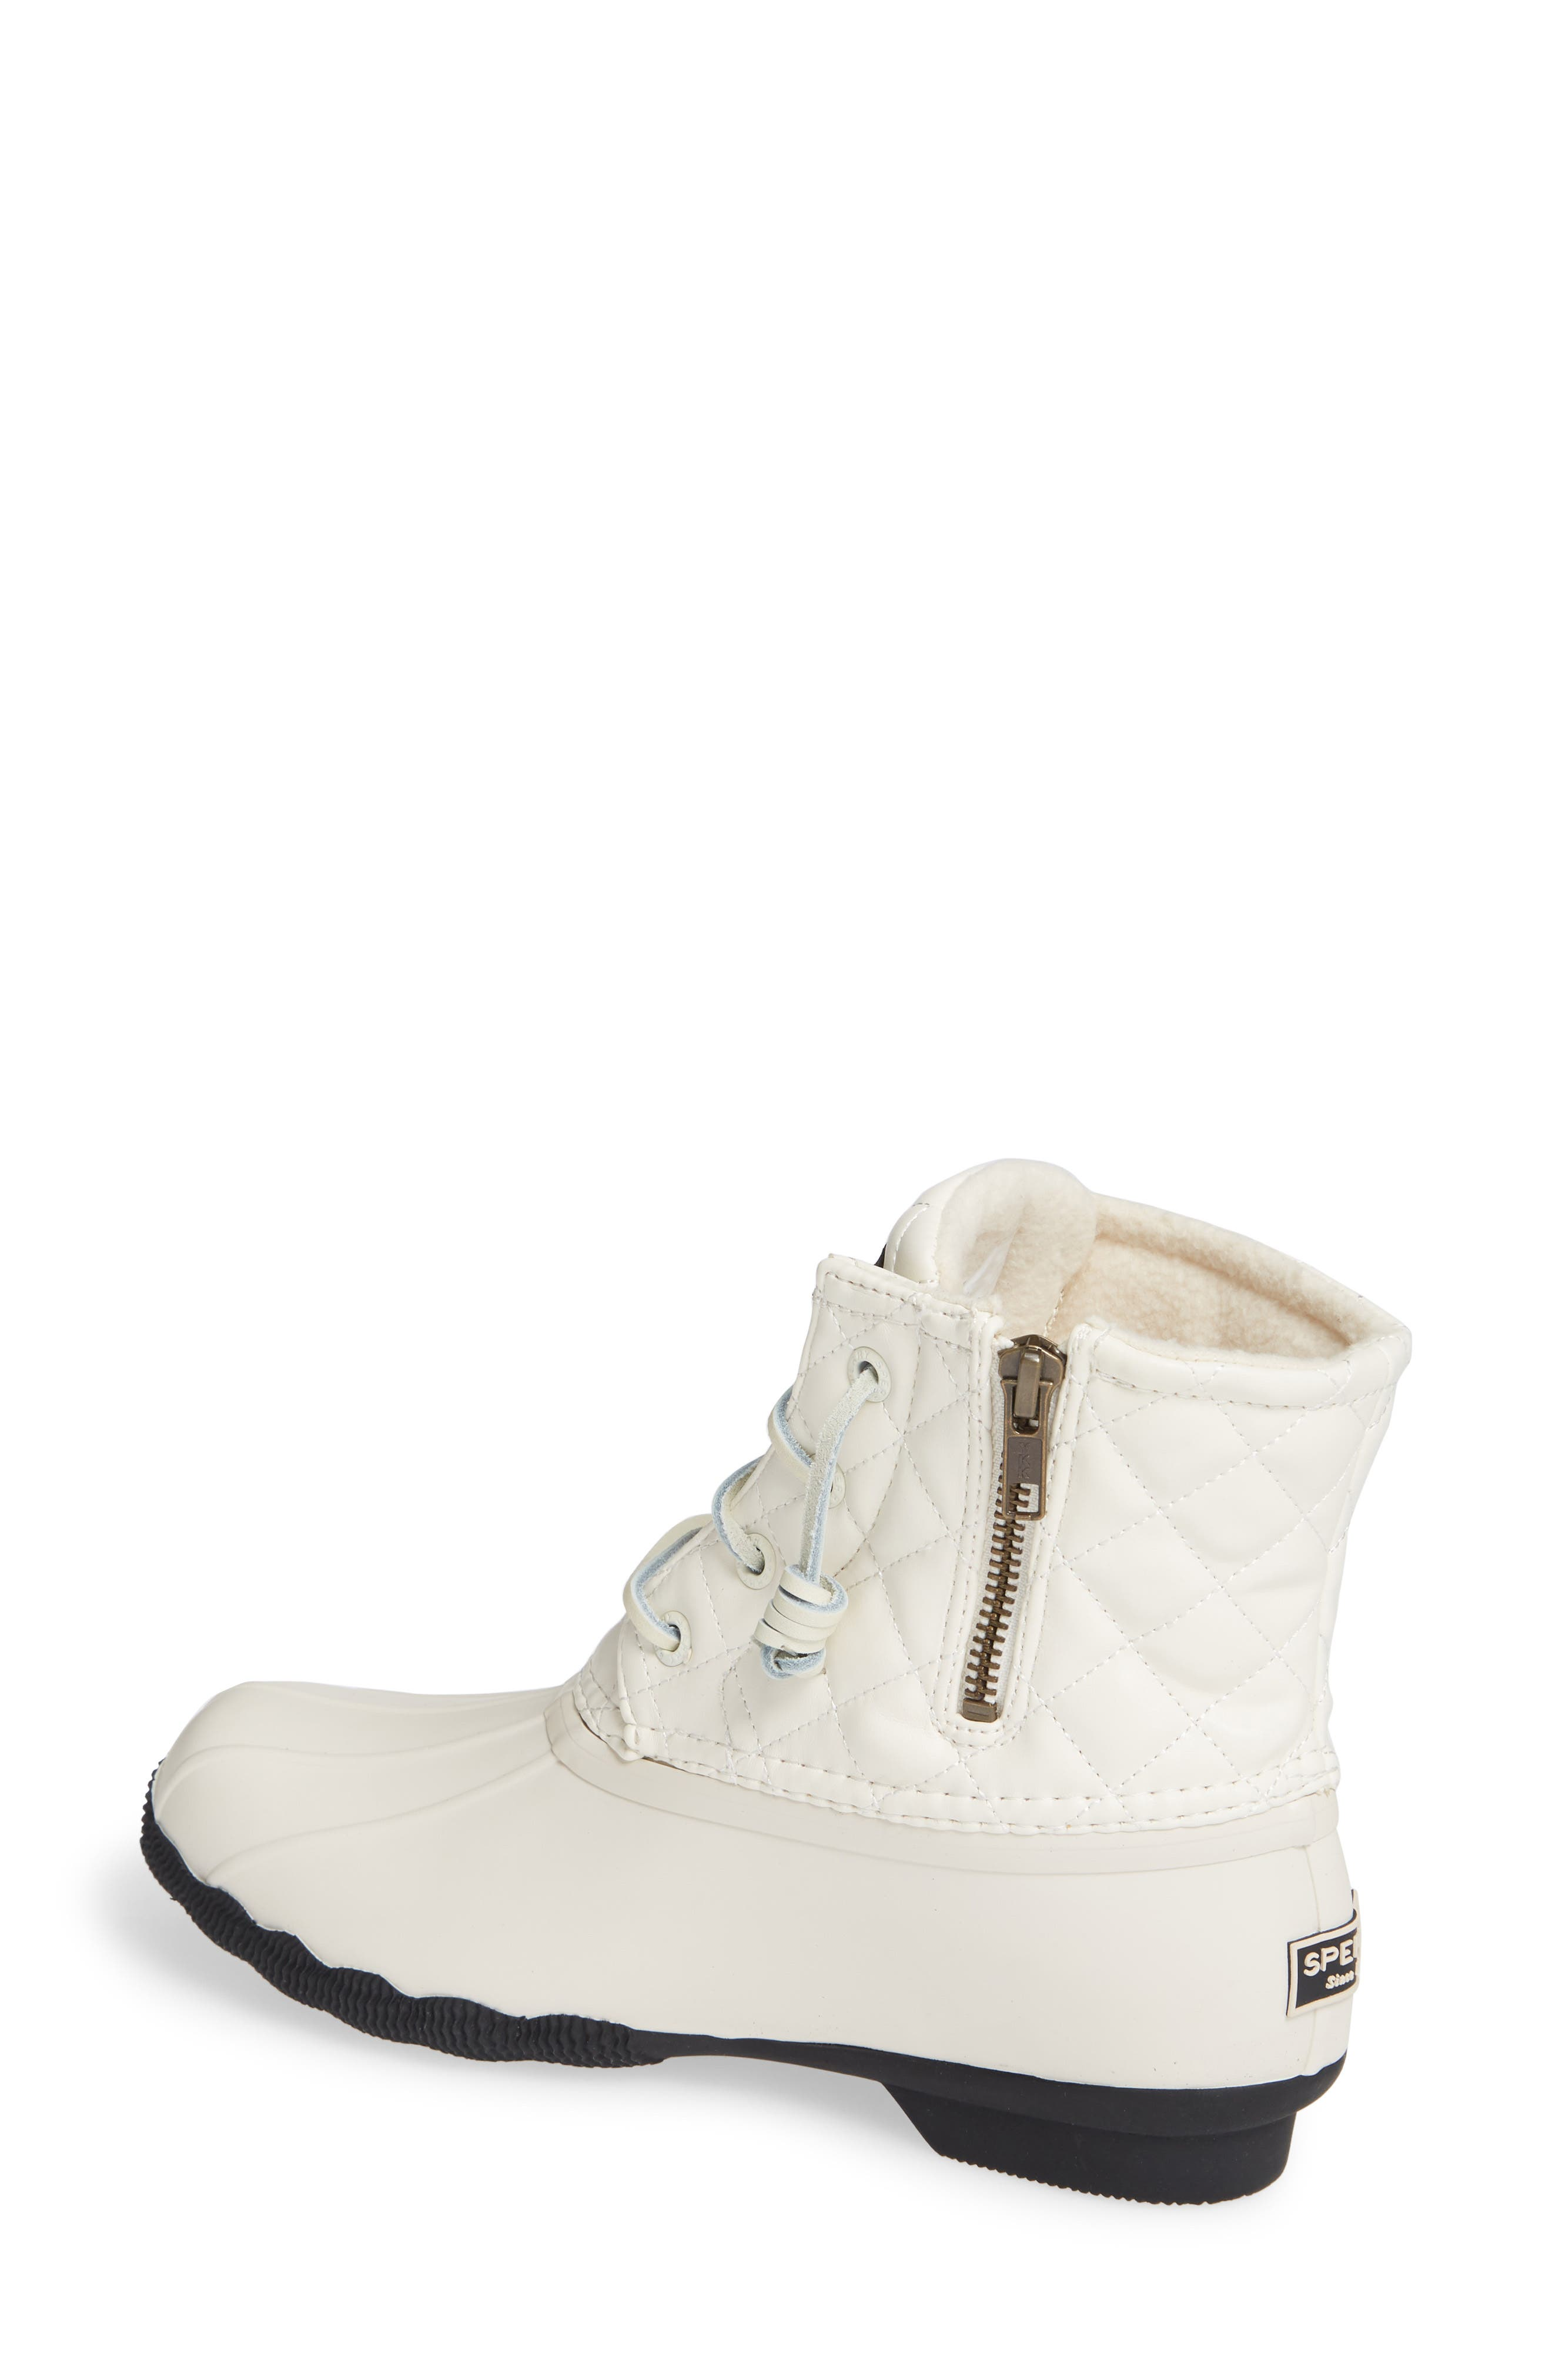 Quilted Luxe Saltwater Waterproof Bootie,                             Alternate thumbnail 2, color,                             IVORY